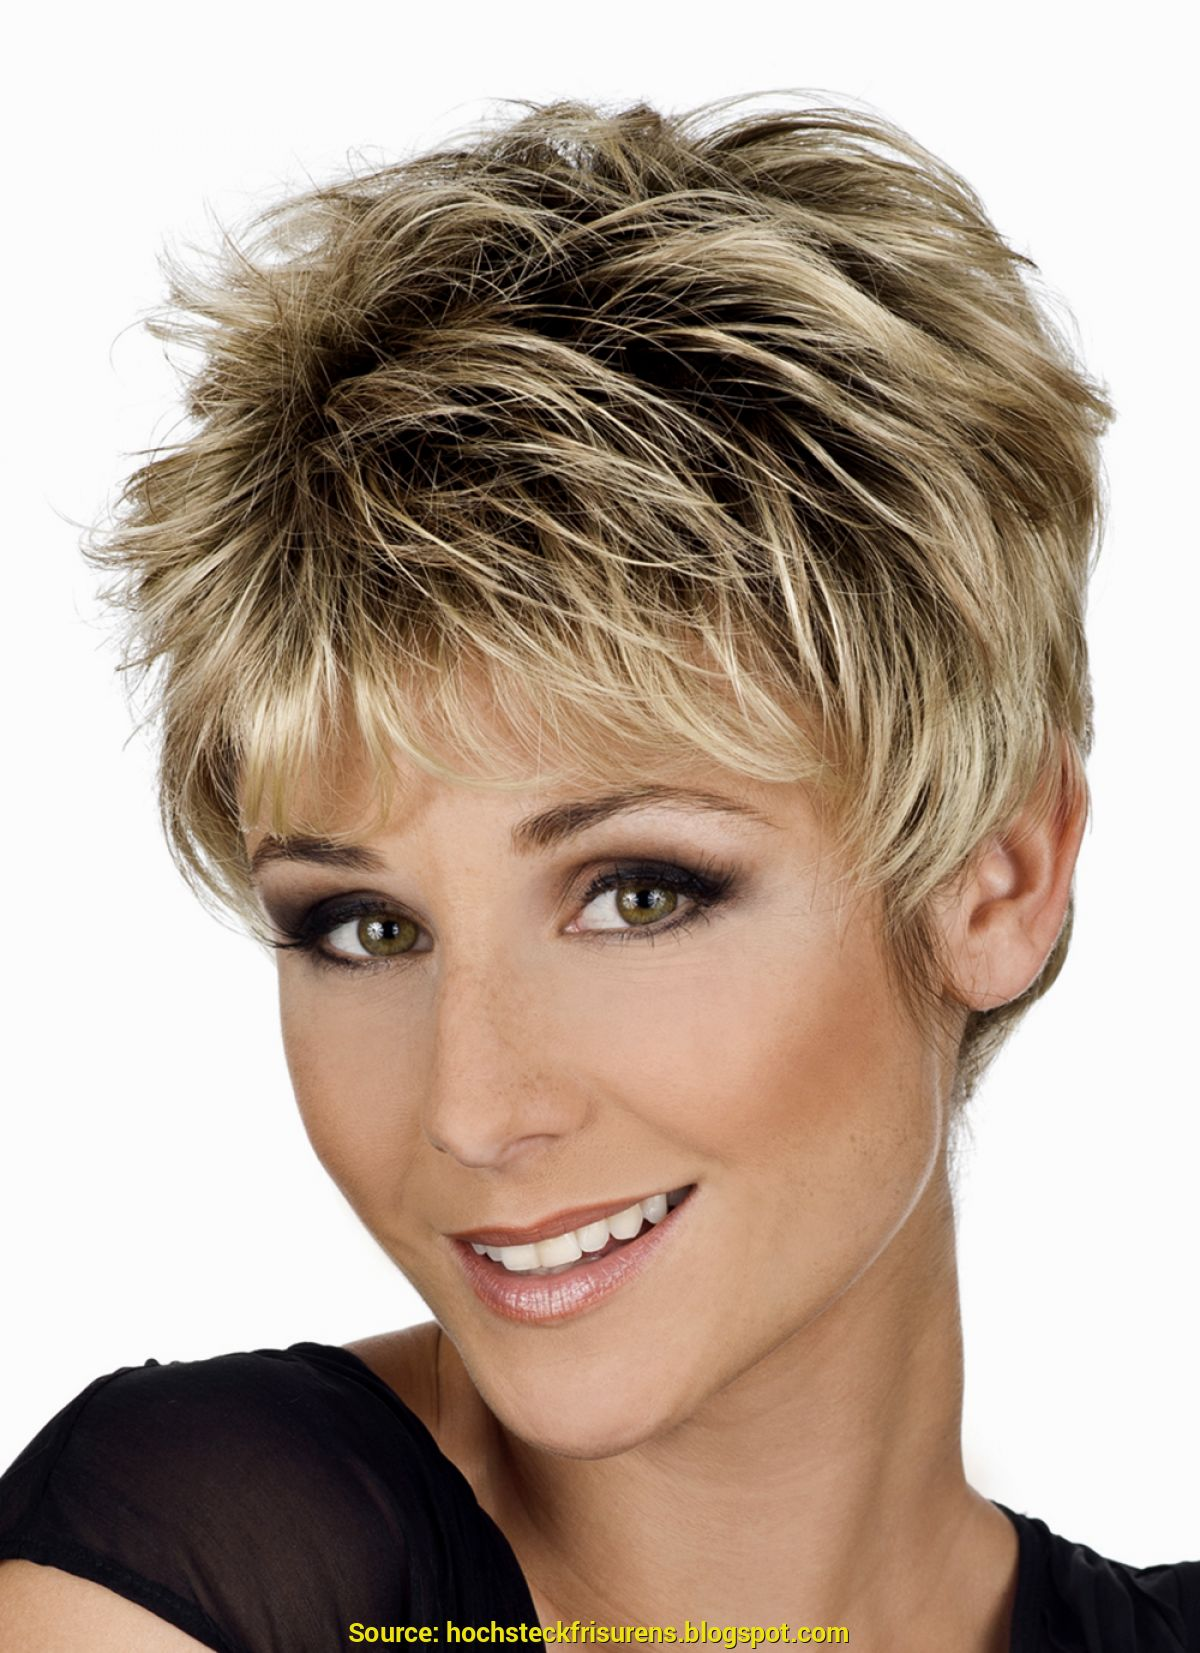 new hairstyles strands photo picture-unique hairstyles strands model